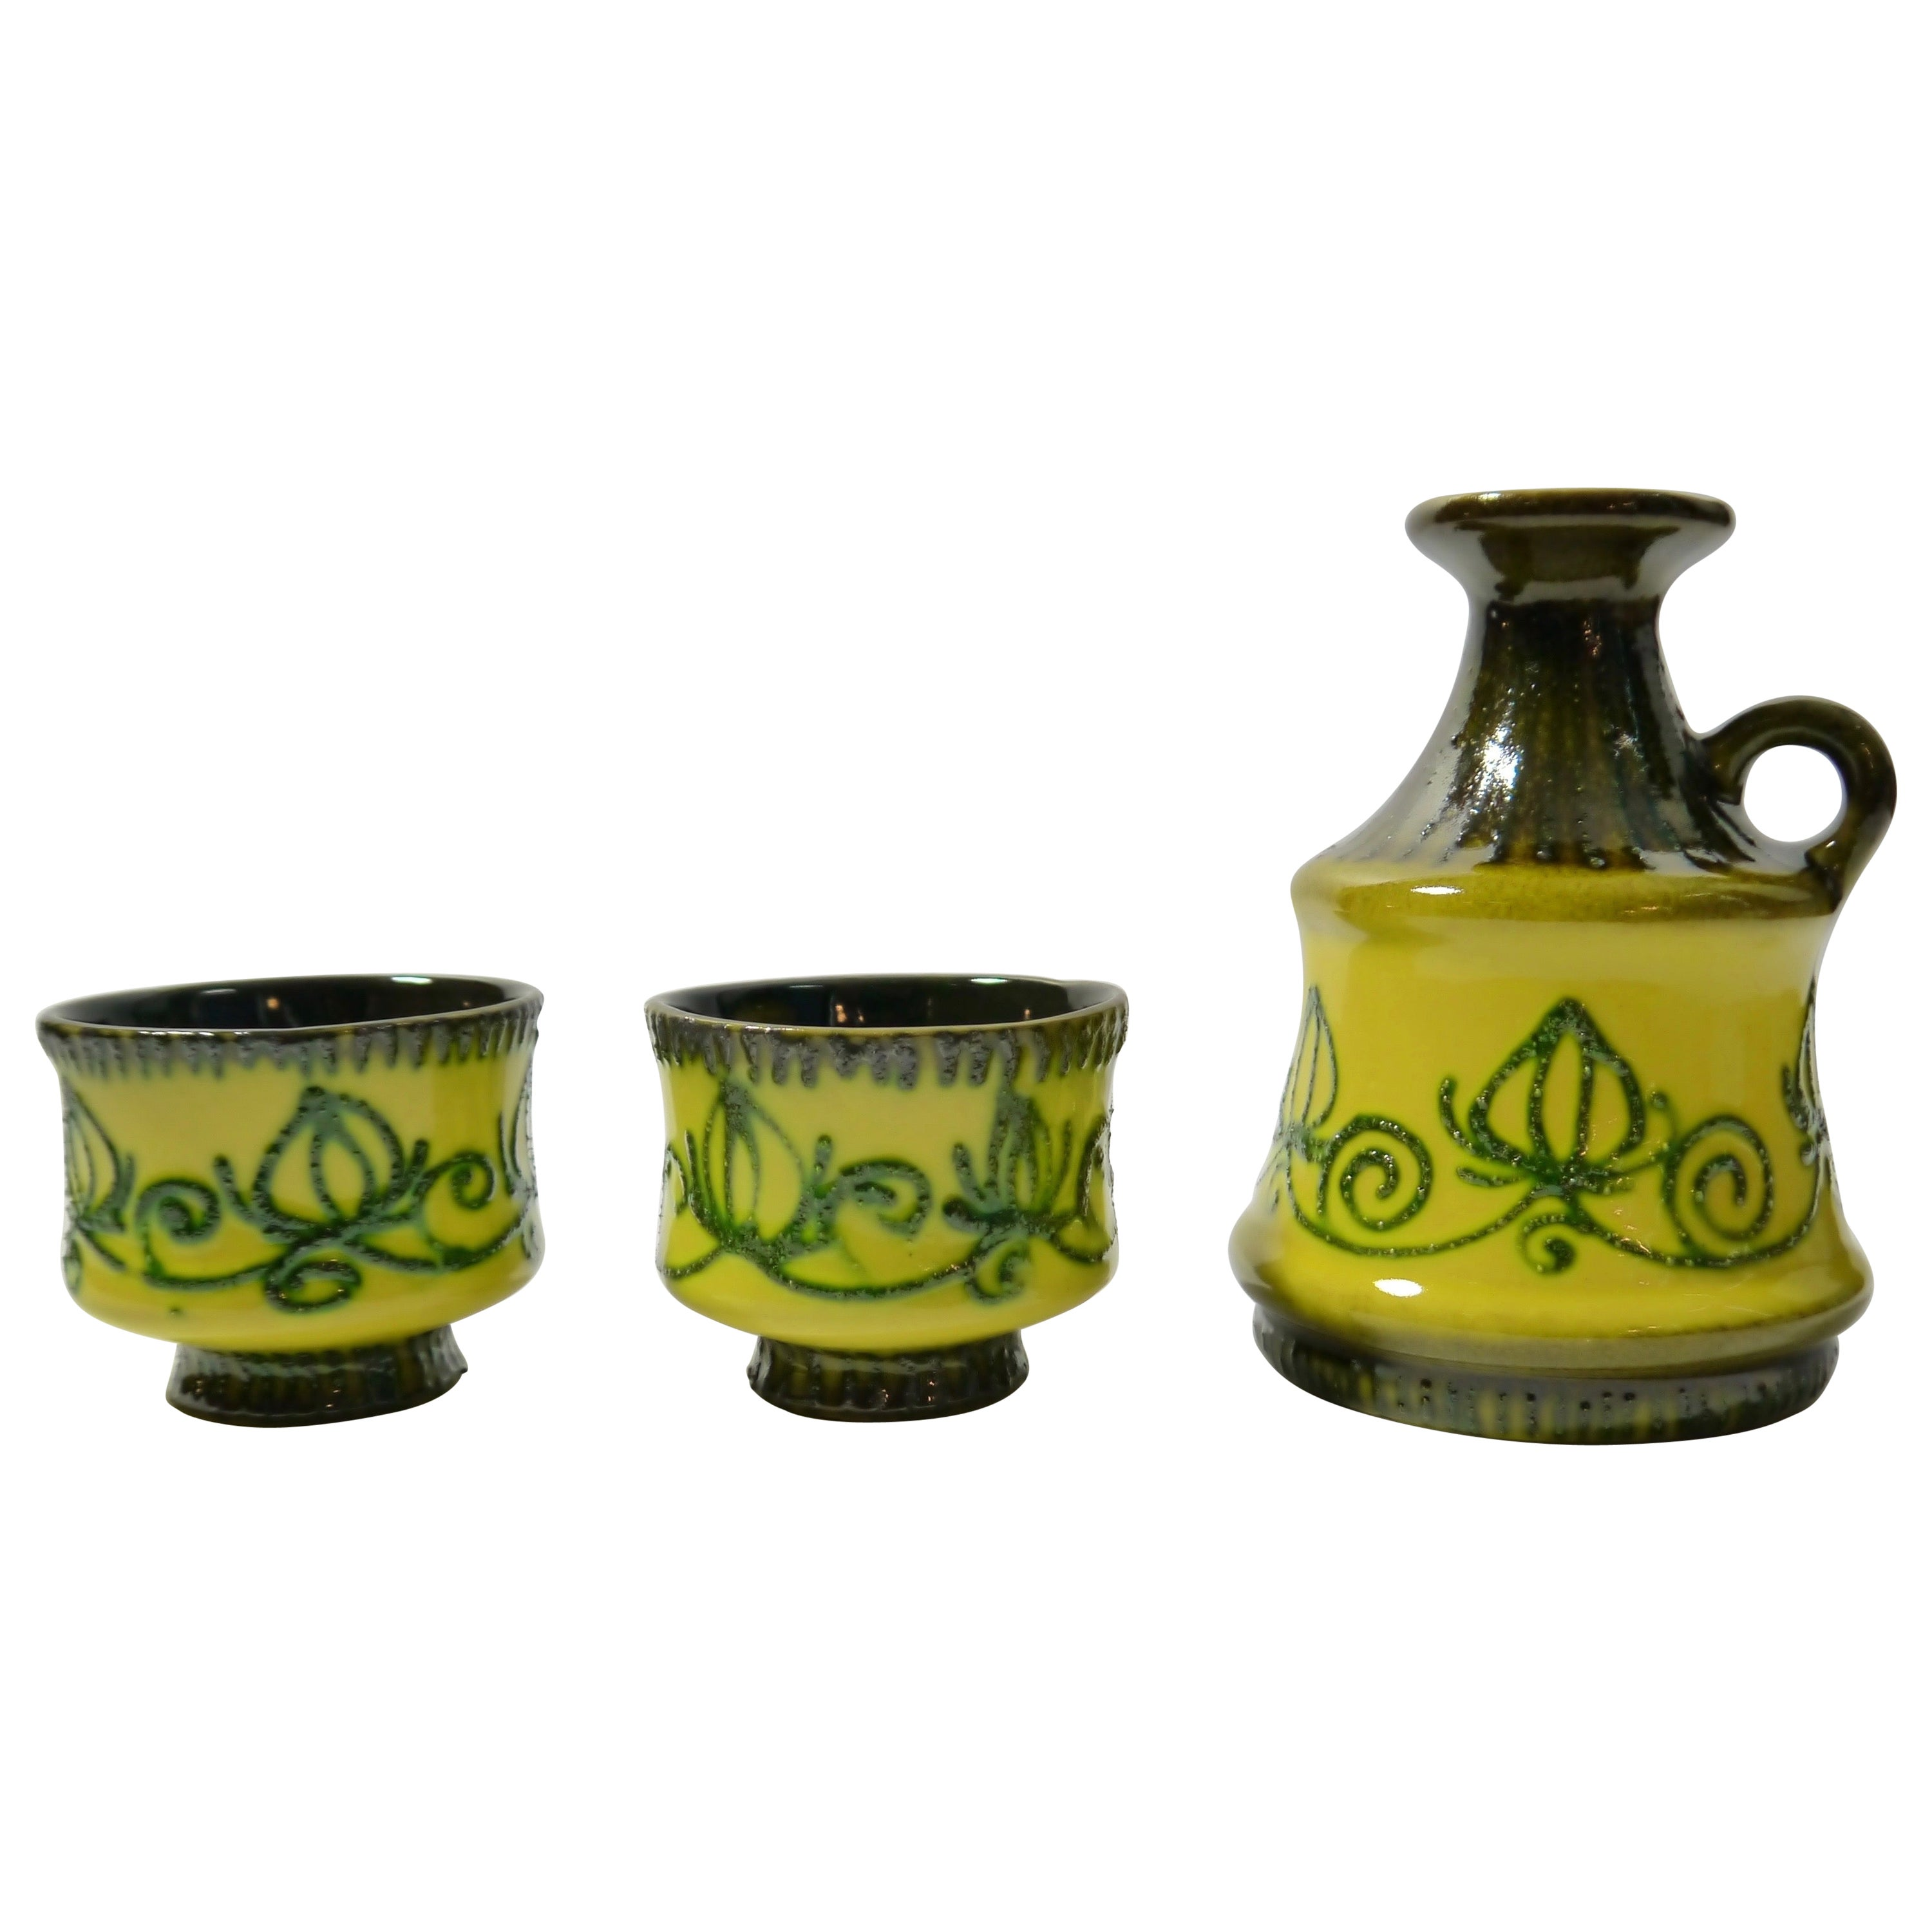 Set of Fat Lava Ceramics by Strehla, East Germany, 1960s